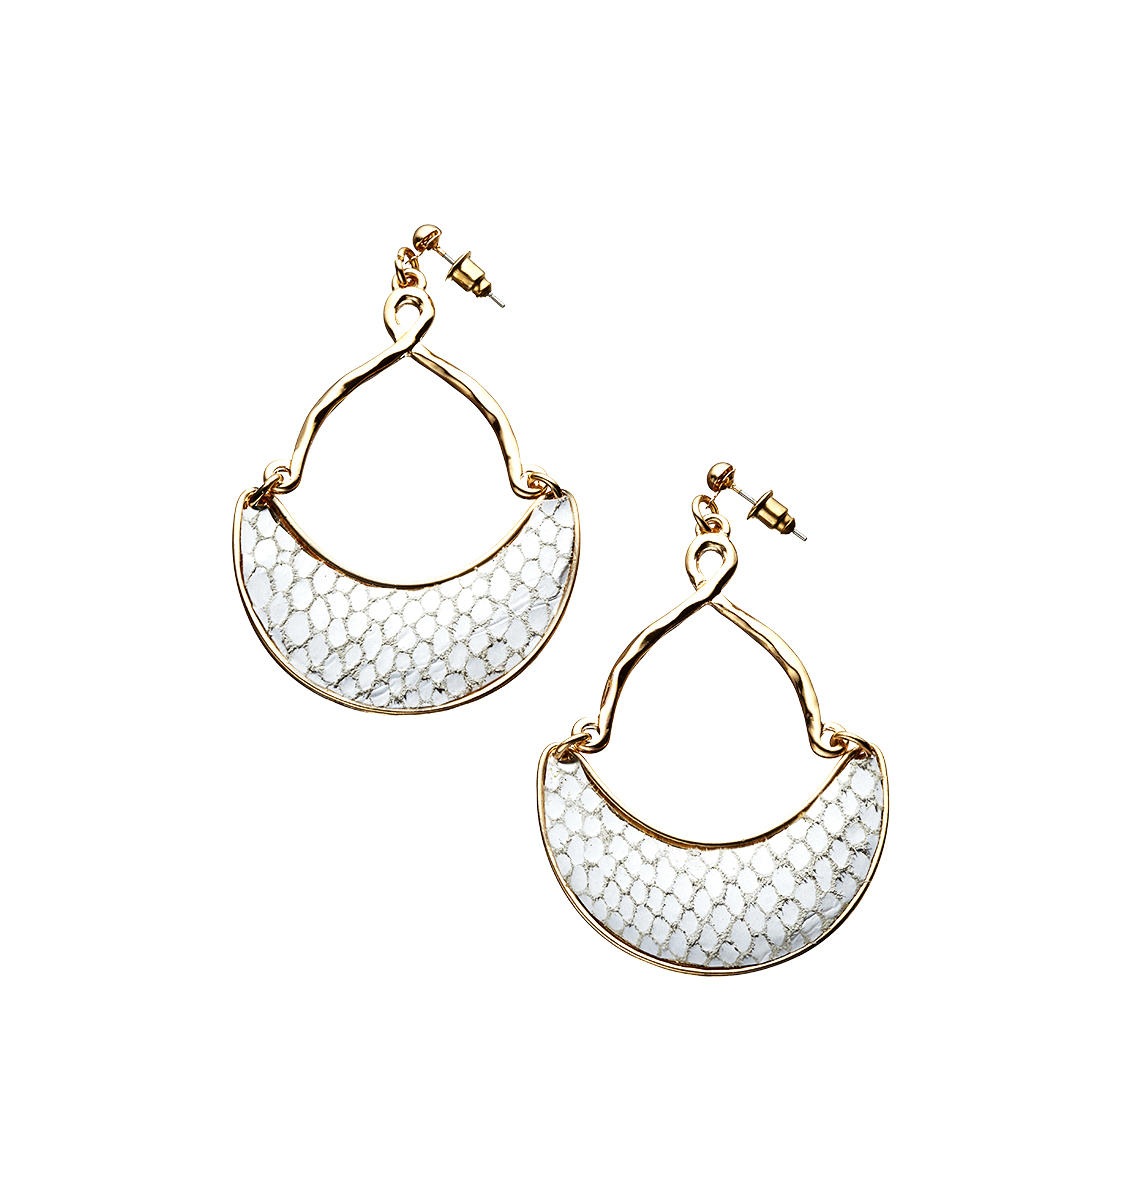 Ted Rossi Earrings